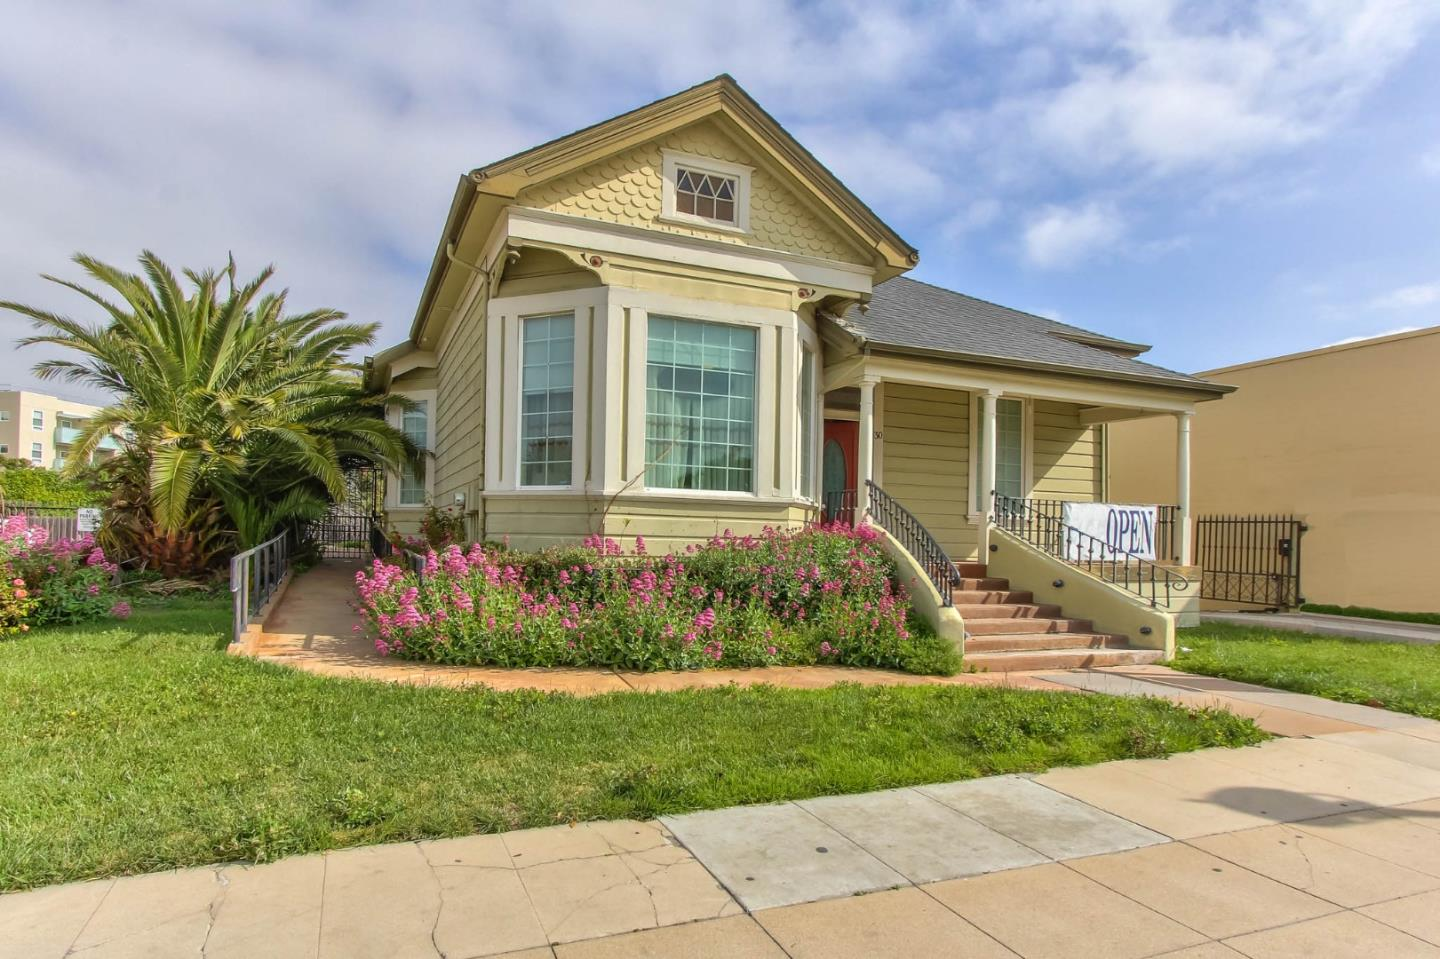 Detail Gallery Image 1 of 1 For 30 Central Ave, Salinas, CA, 93901 - 3 Beds | 2 Baths